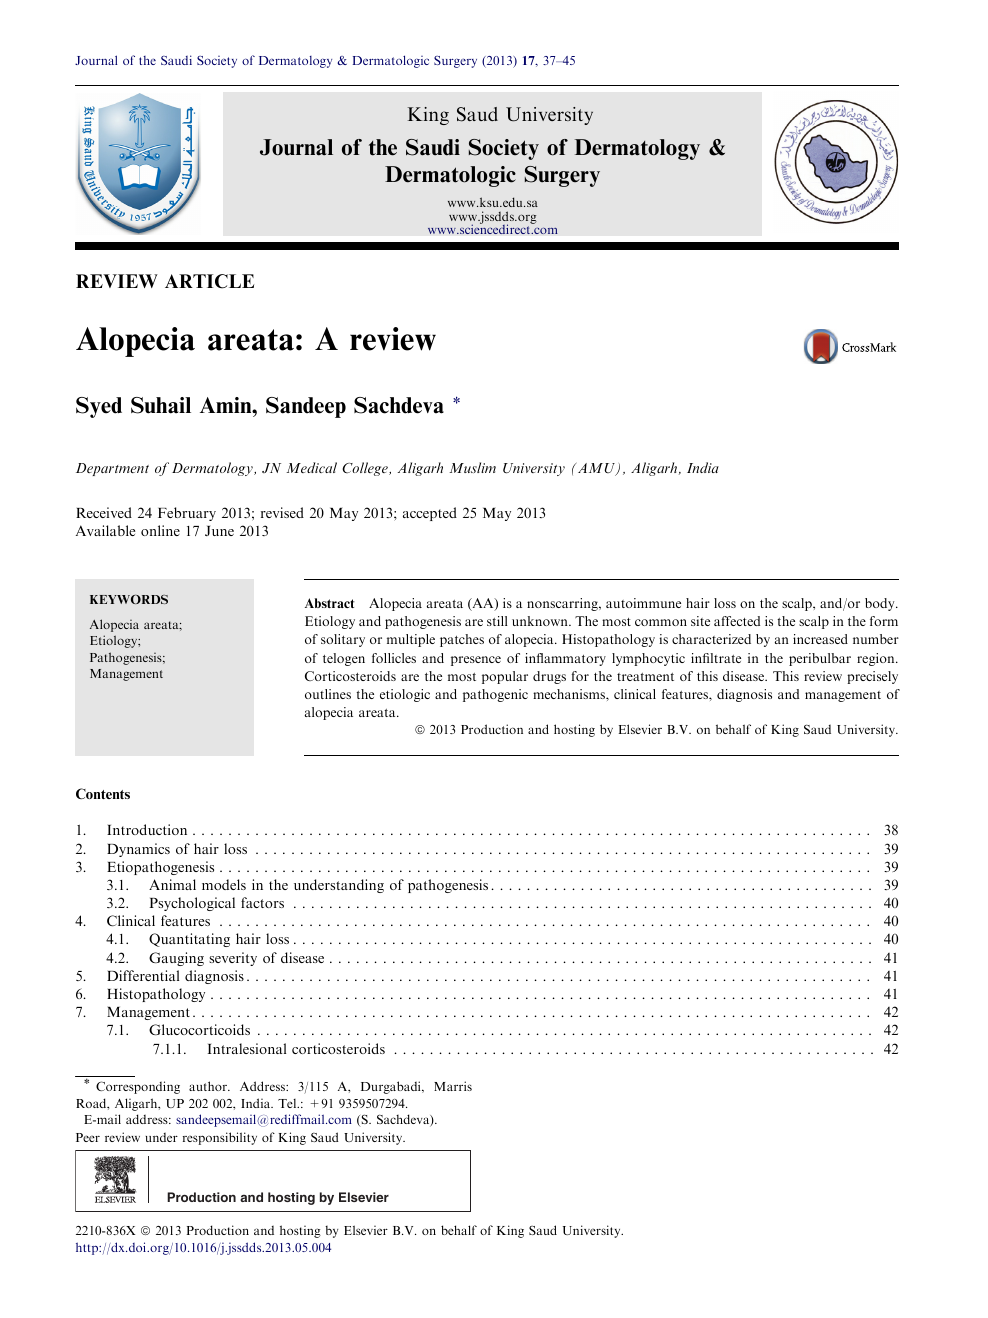 Alopecia areata: A review – topic of research paper in